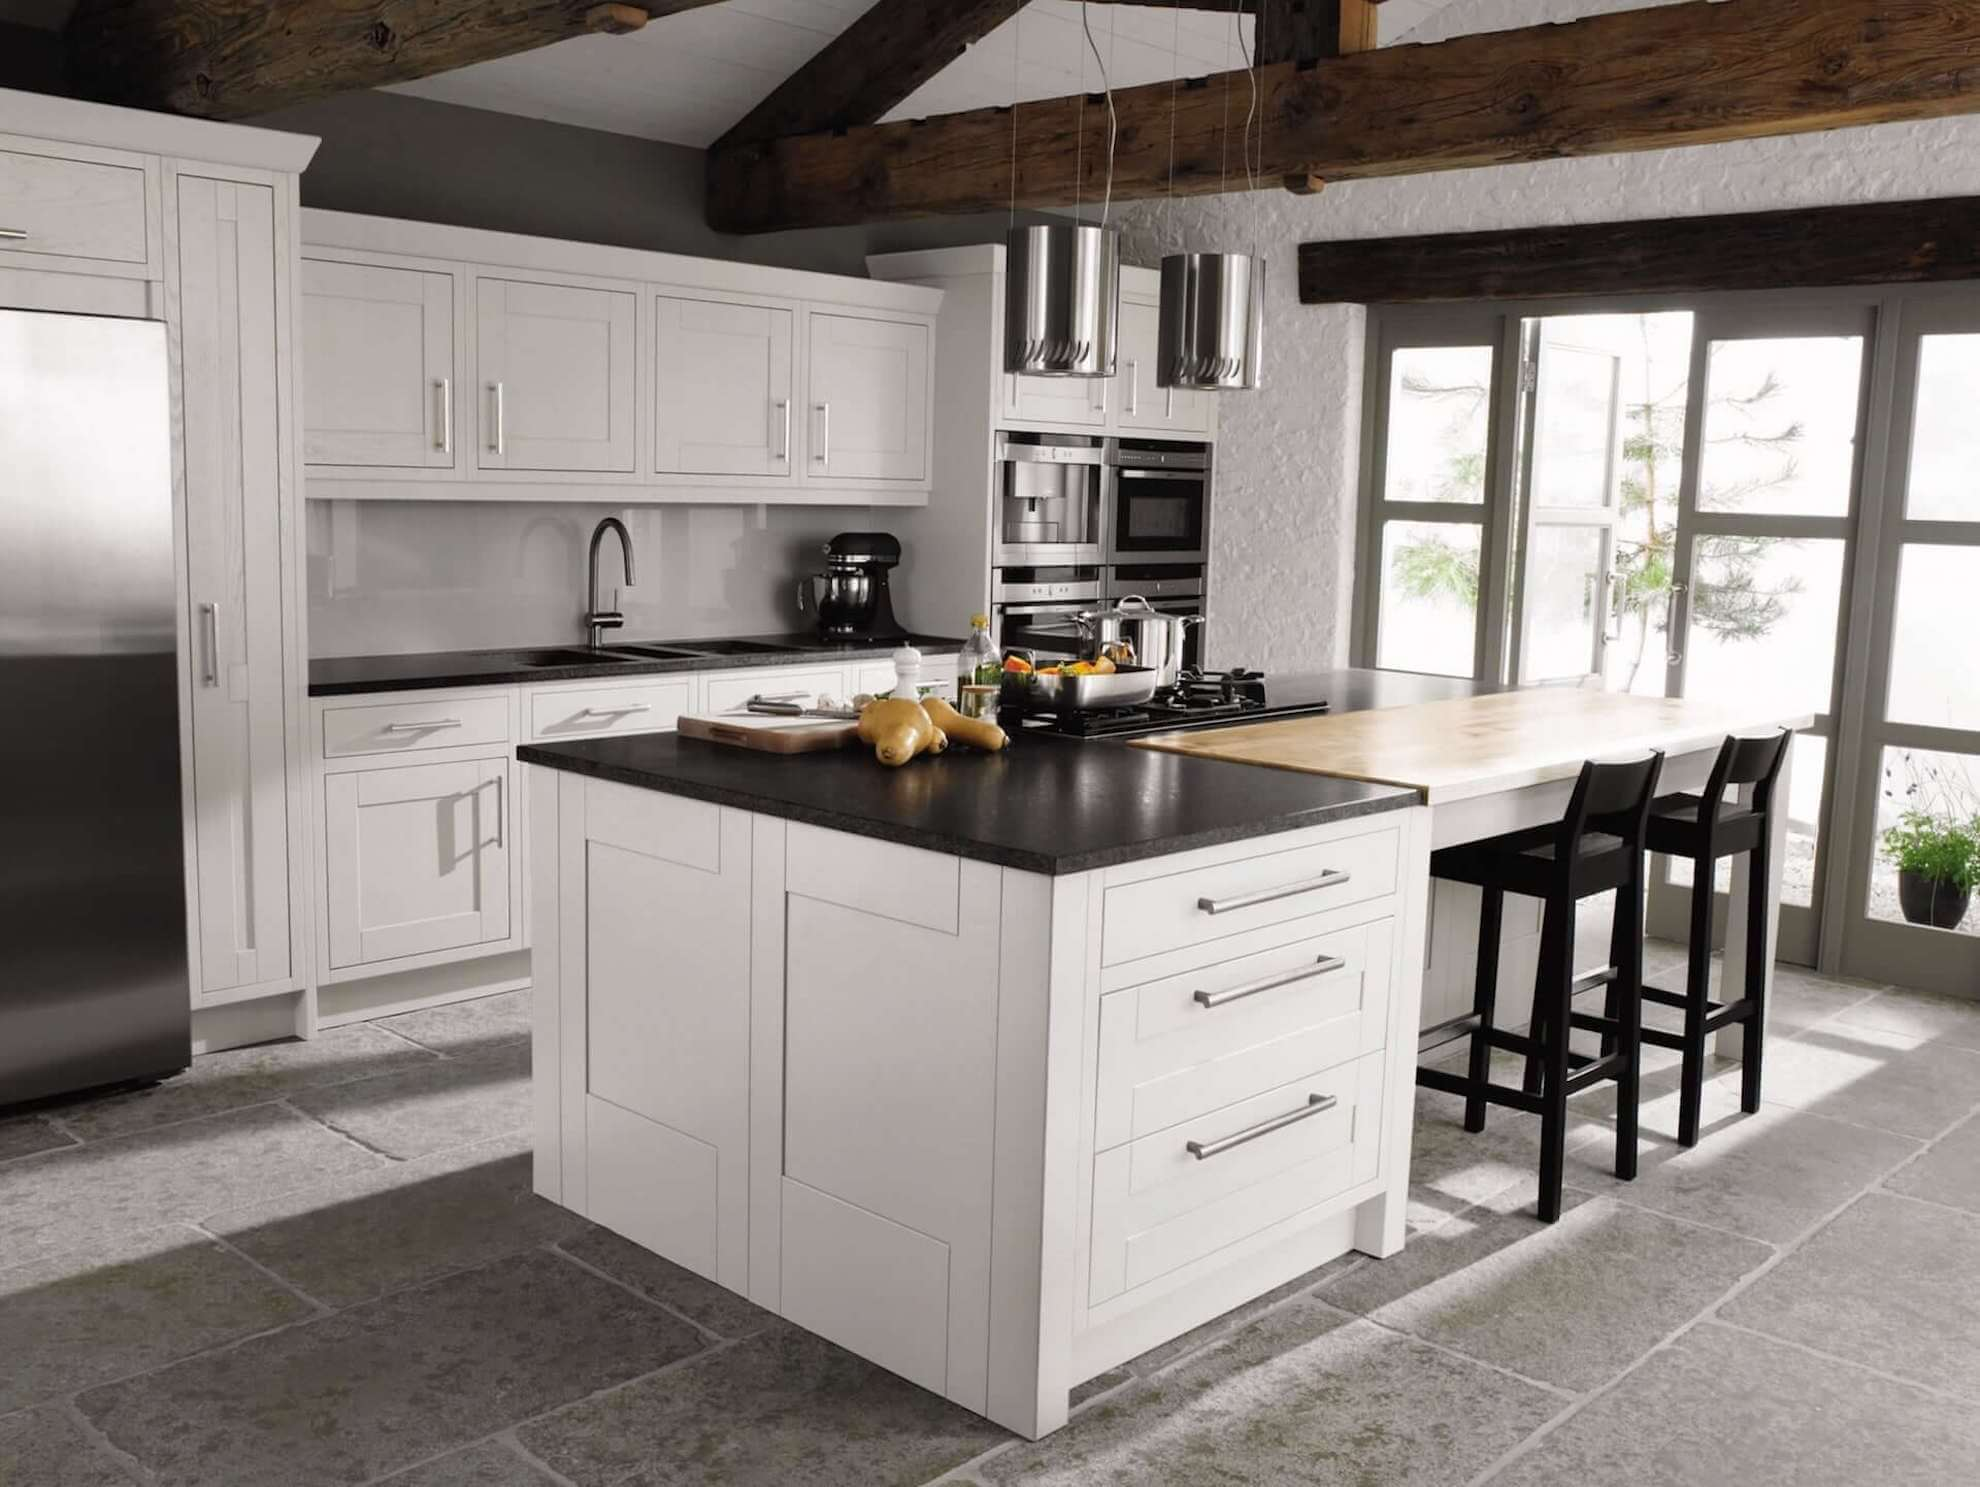 contemporary-kitchen-with-contemporary-kitchens-notbutoh.jpg